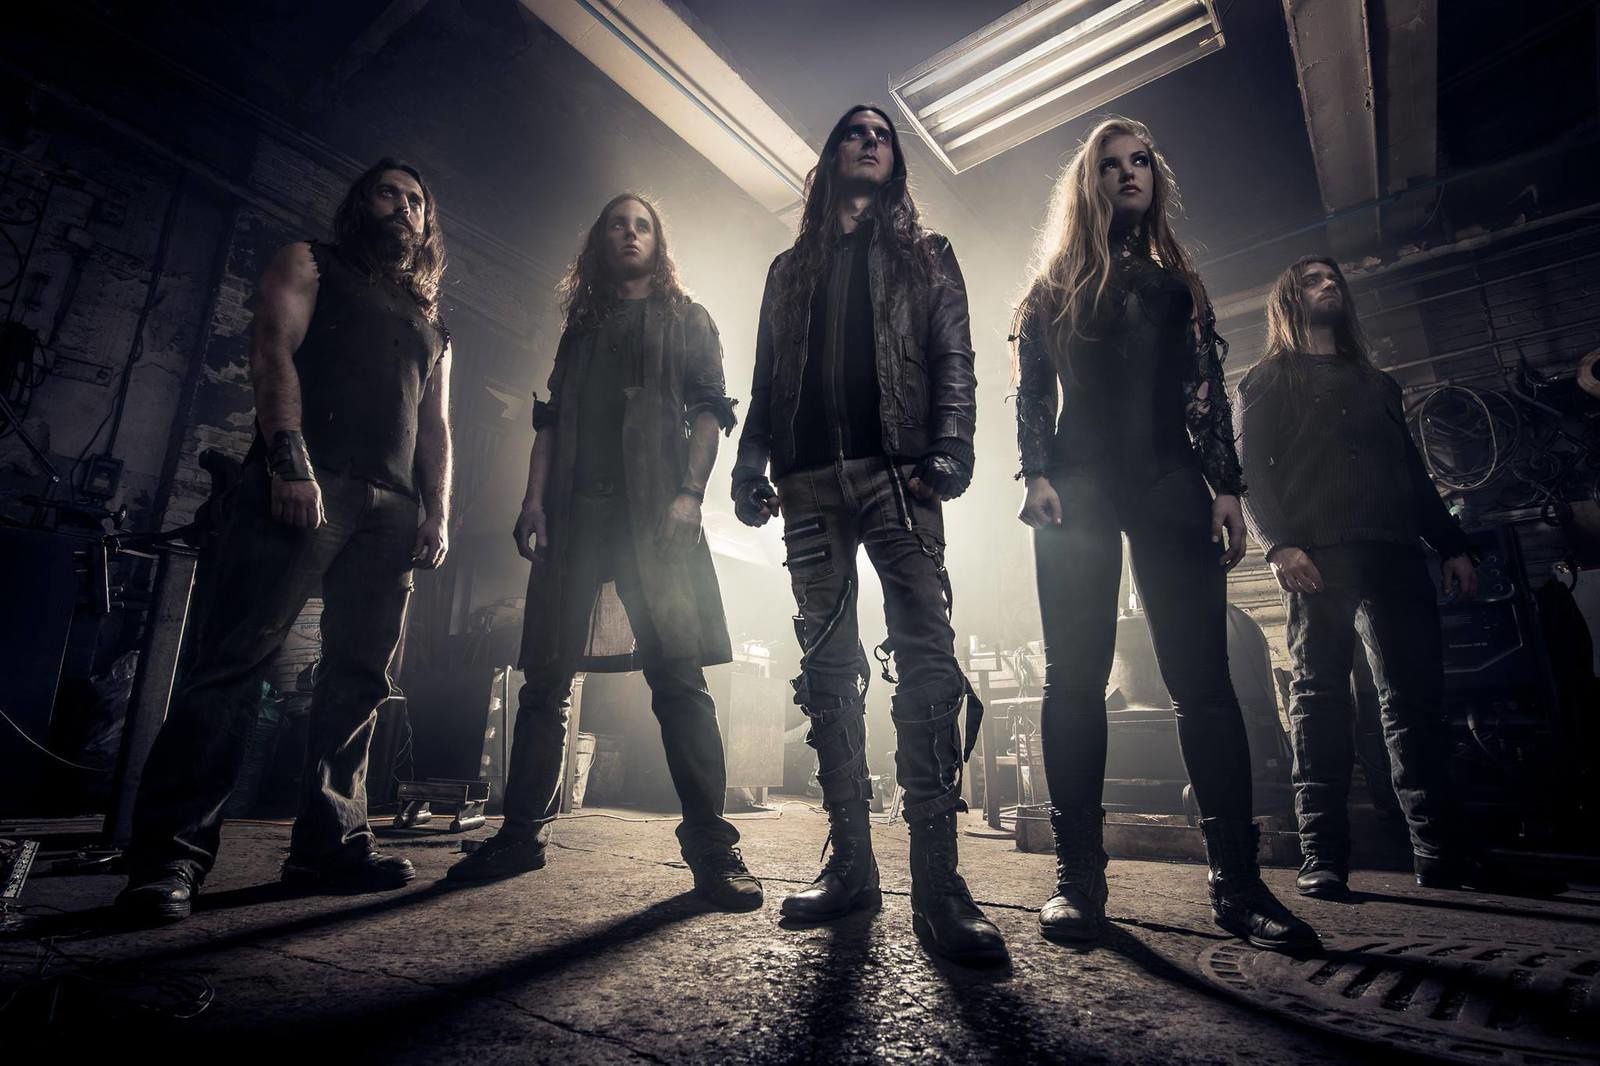 THE new AGONIST videoclip